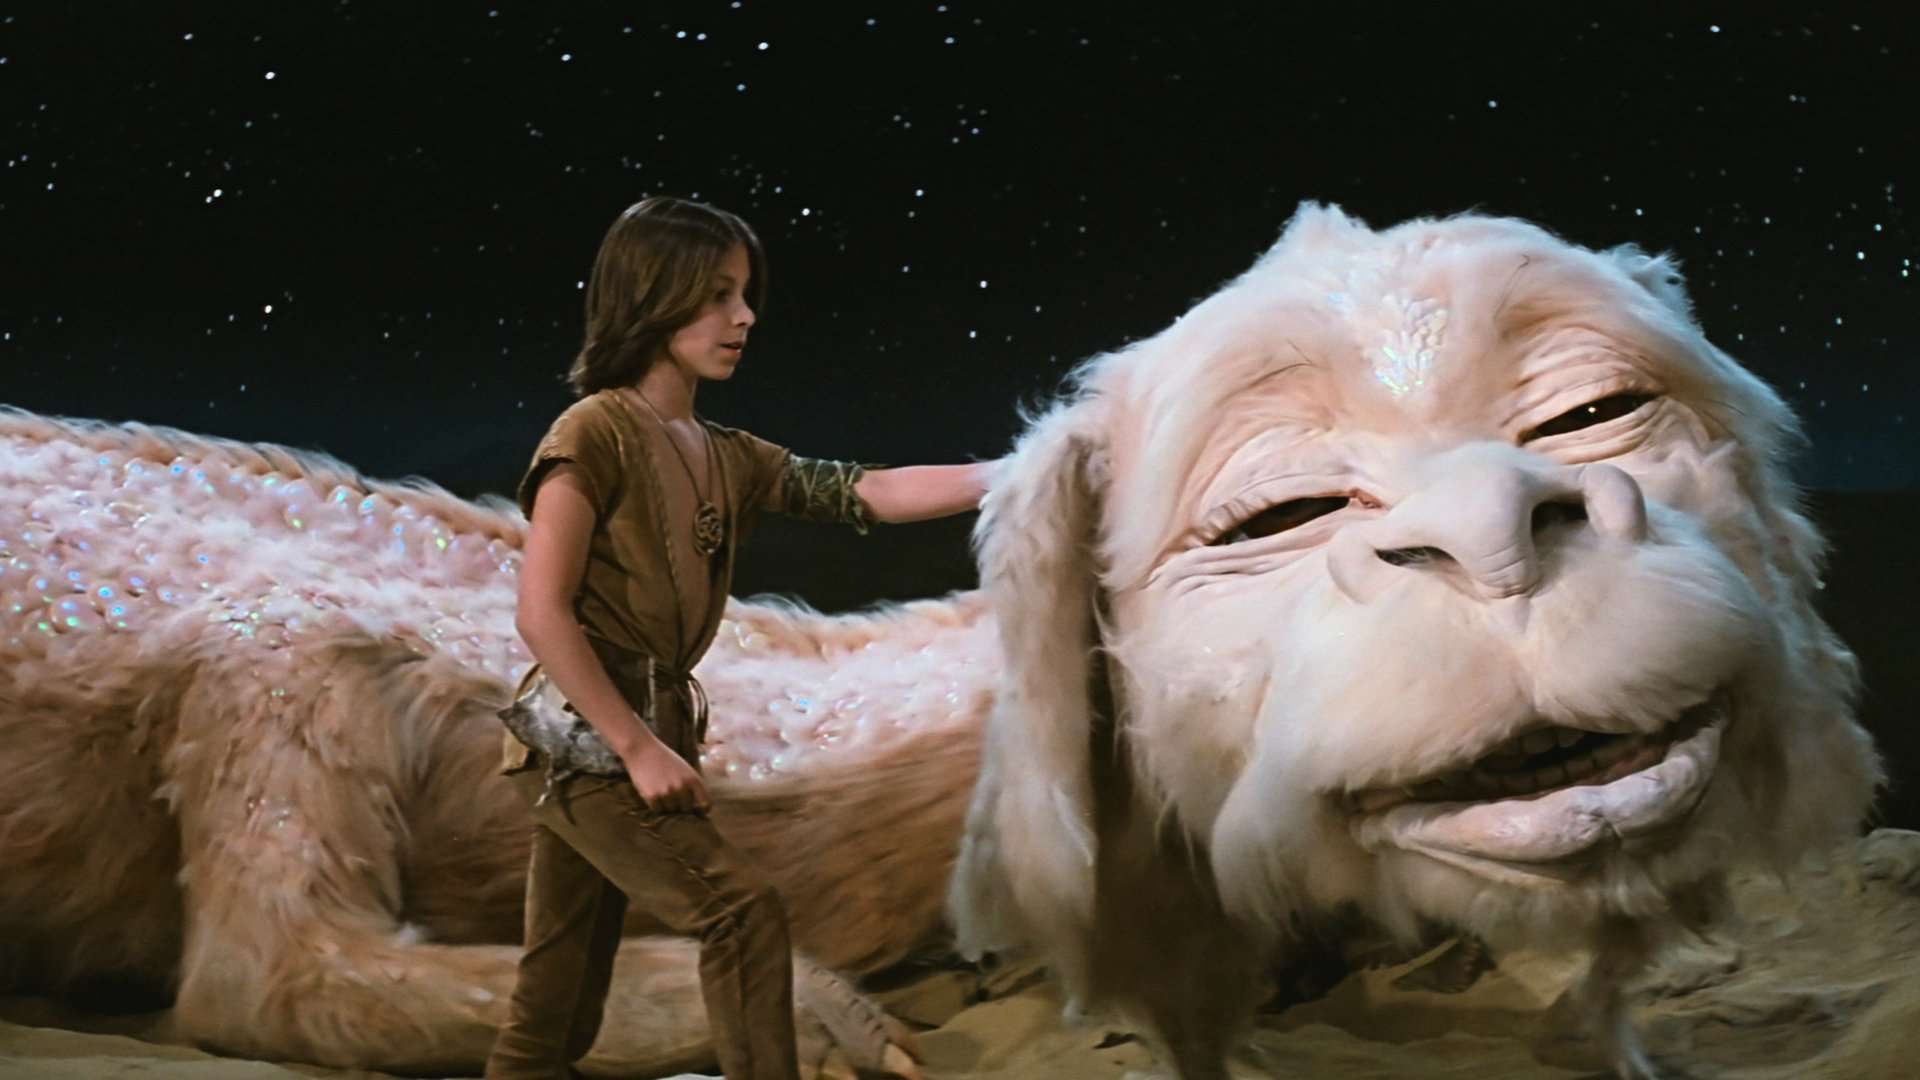 Noah Hathaway as Atreyu along with his Luckdragon in The NeverEnding Story (1984)